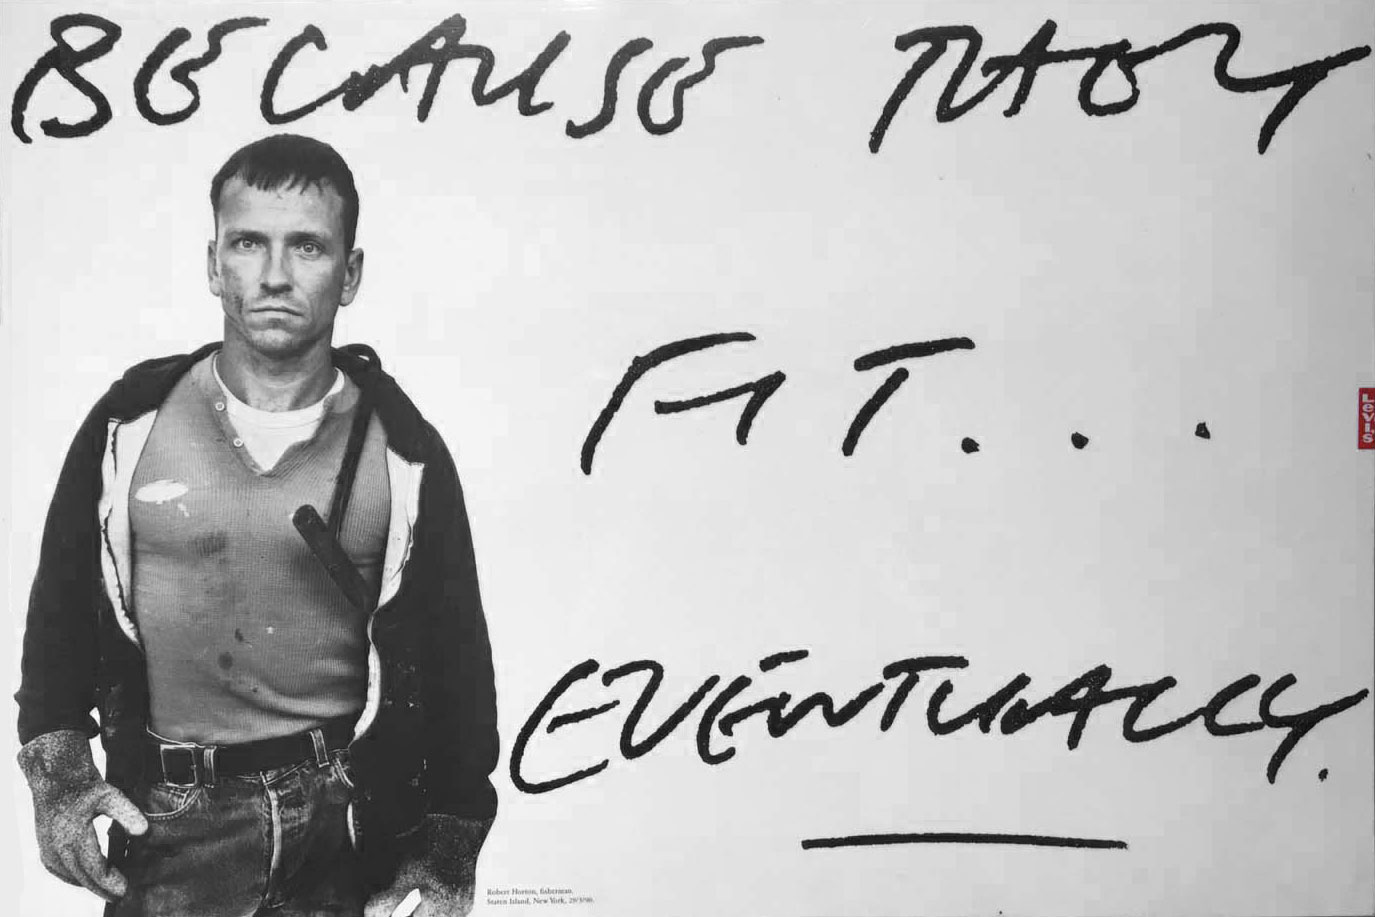 A rugged-looking man stares out next to the hand-written text 'BECAUSE THEY'LL FIT... EVENTUALLY'